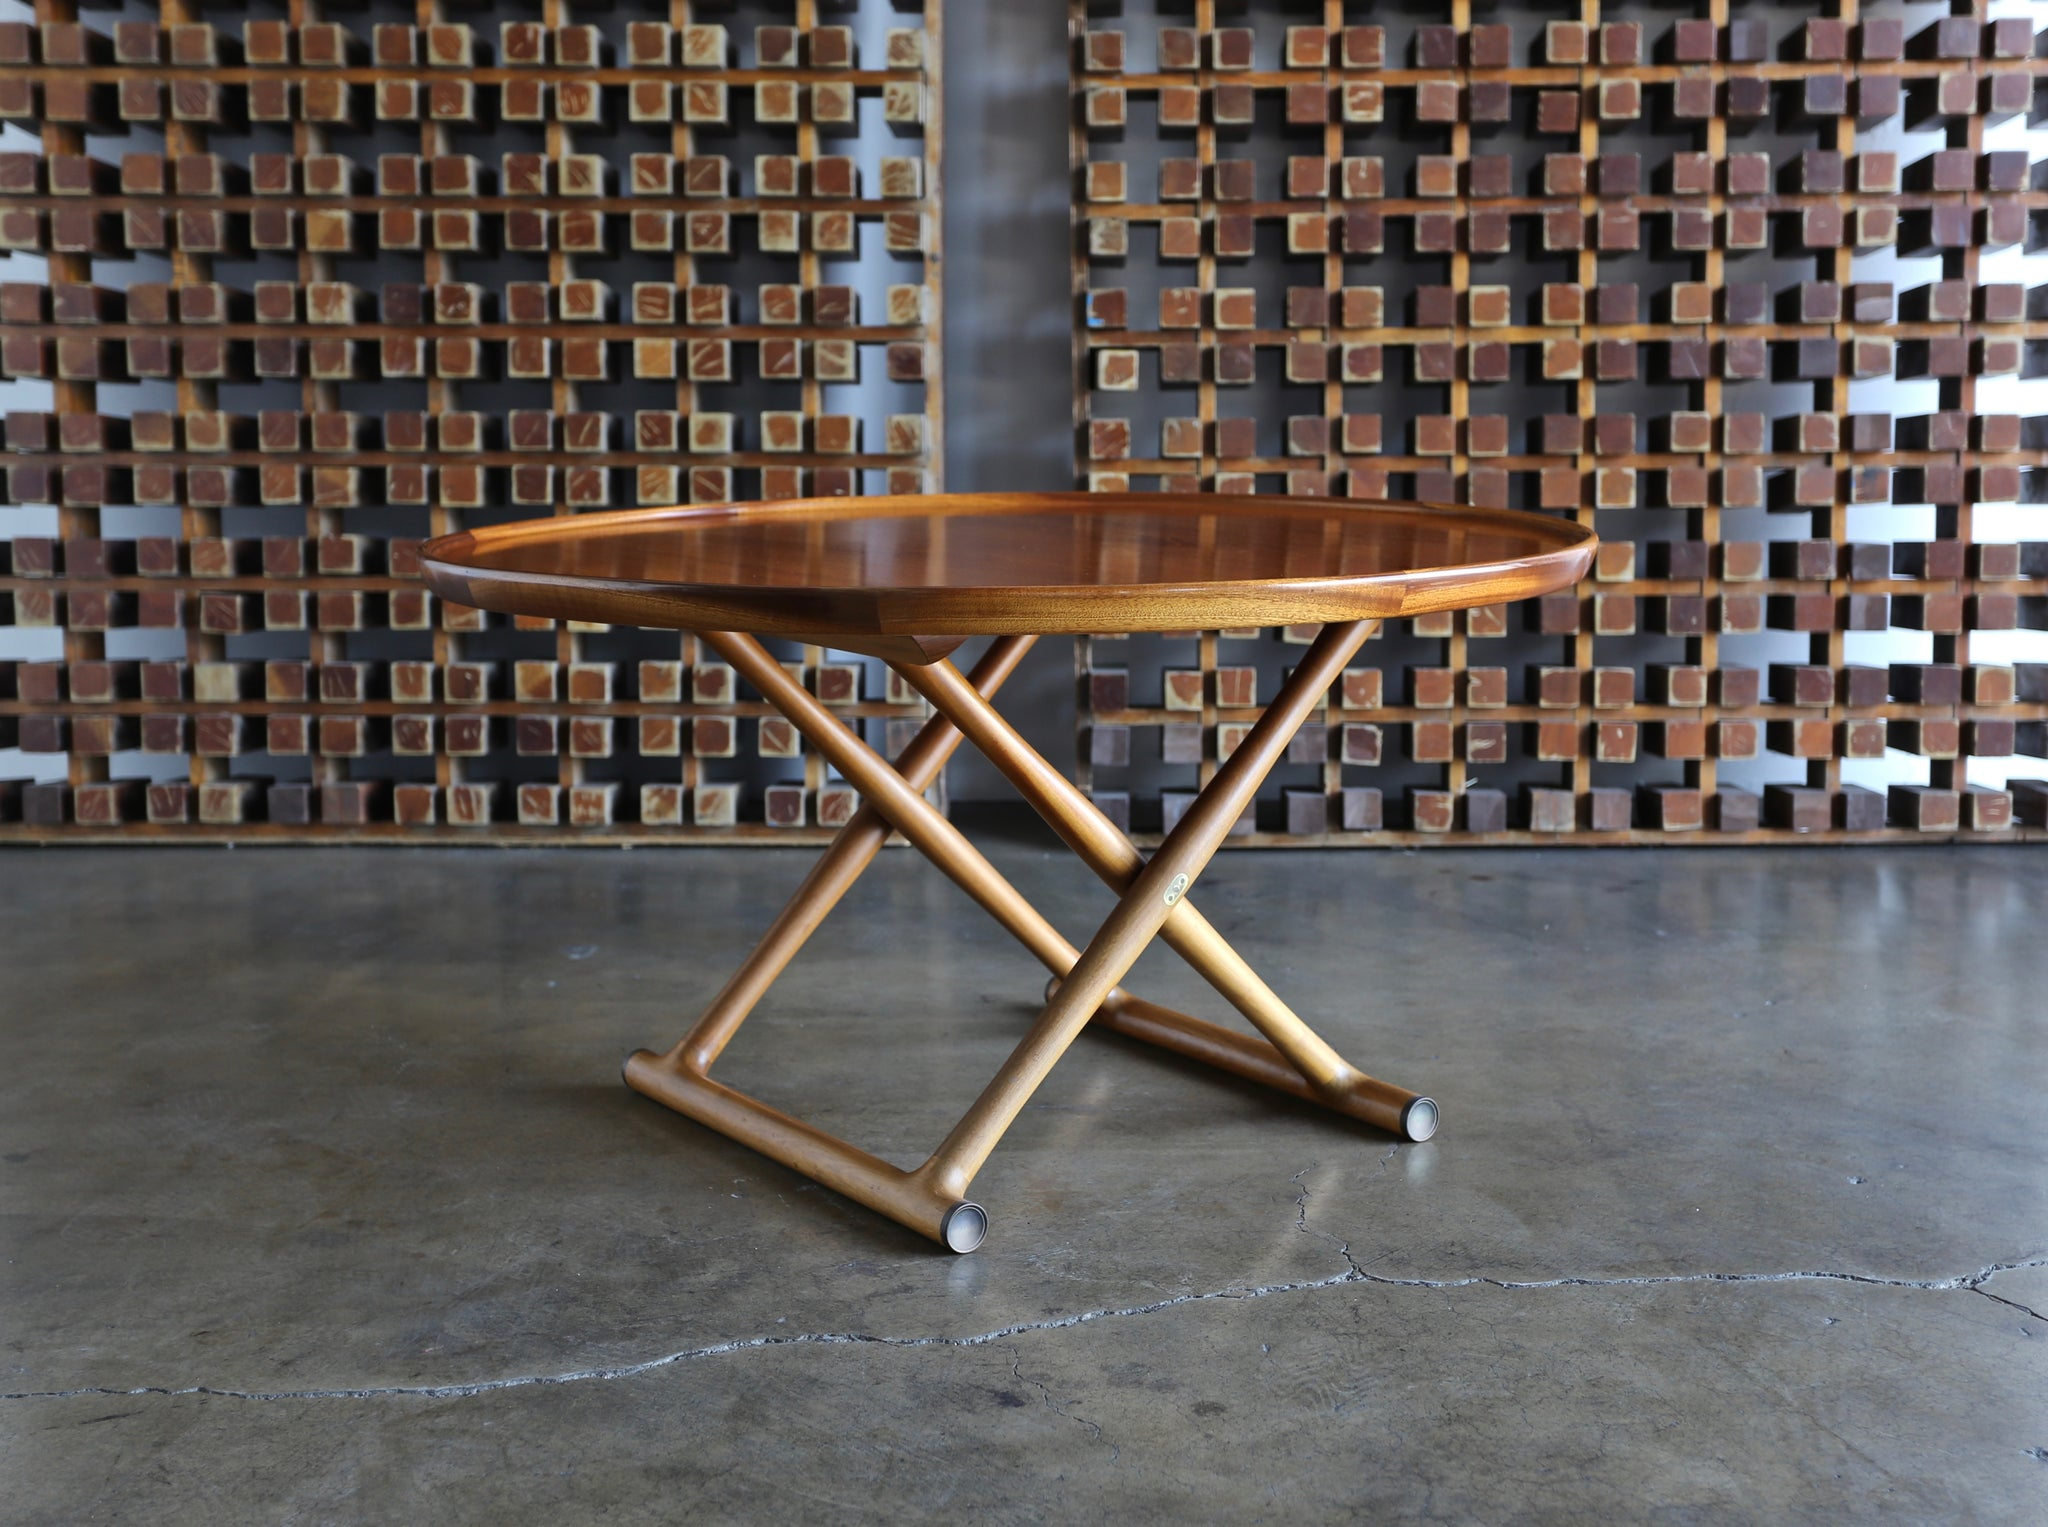 Large Egyptian Table by Mogens Lassen for A.J. Iversen circa 1955